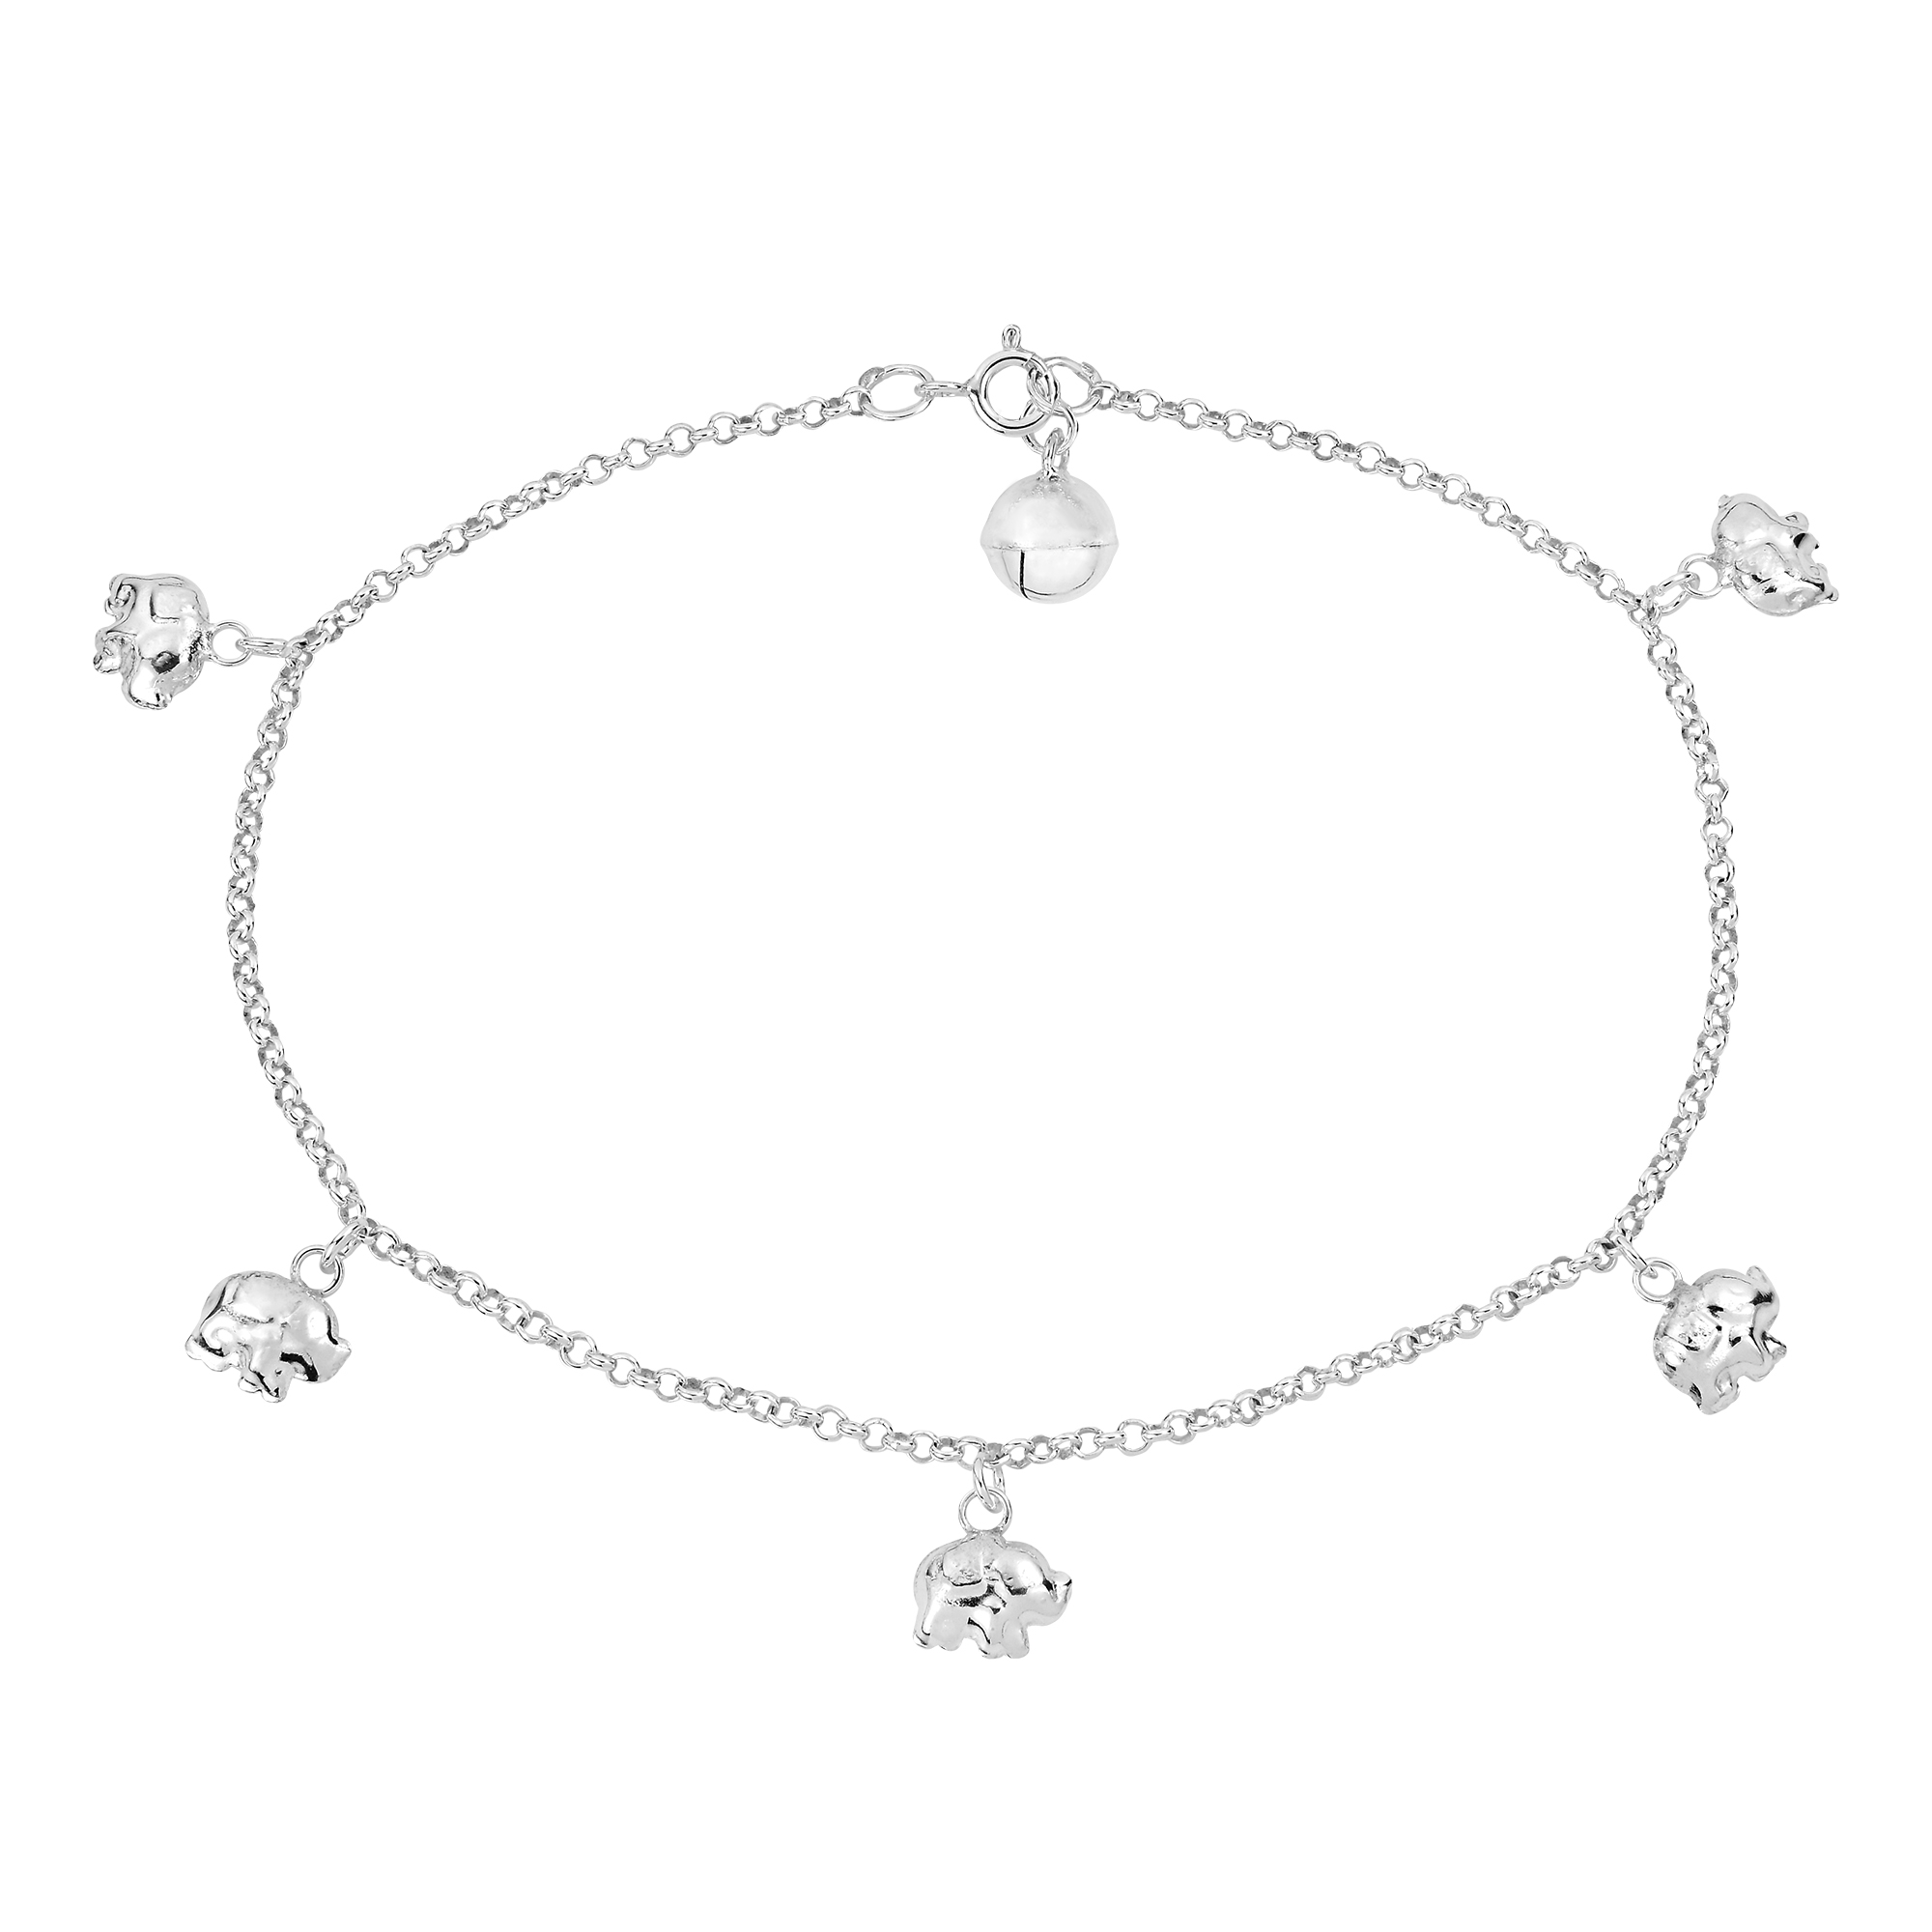 anklets anklet kalapa jewellery silver types the collections ko inch